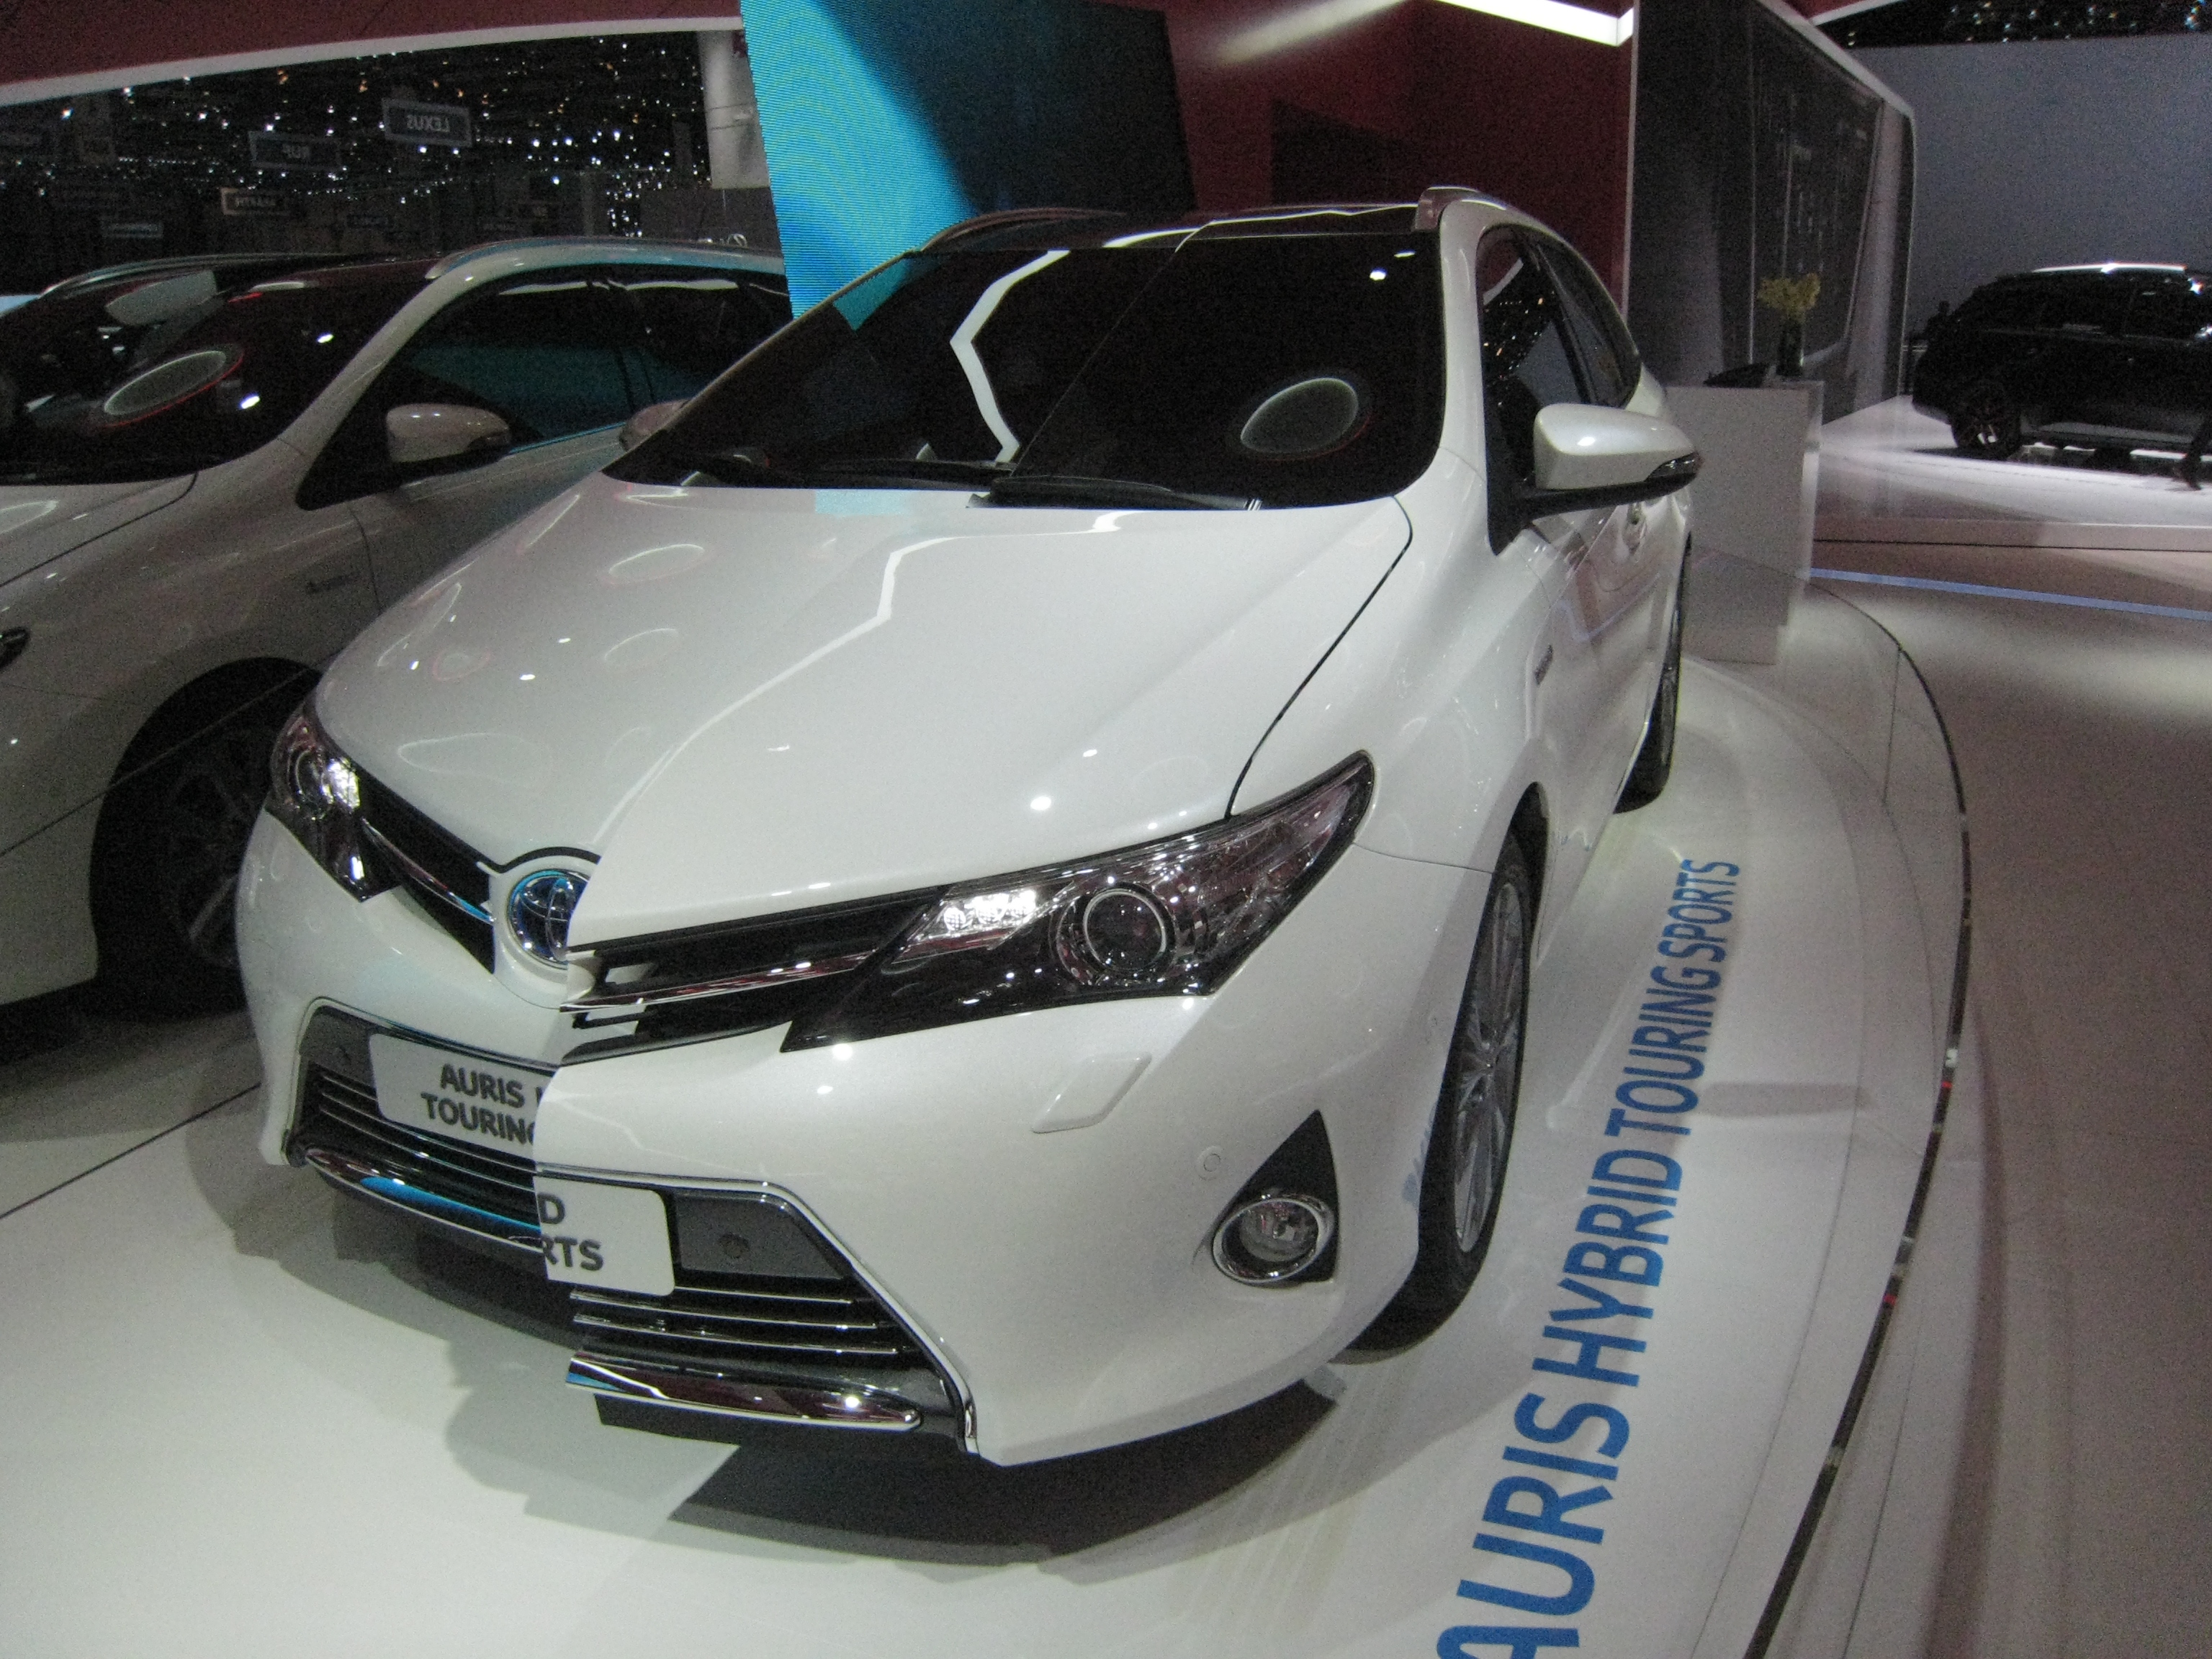 file toyota auris touring sports hybrid jpg wikimedia commons. Black Bedroom Furniture Sets. Home Design Ideas